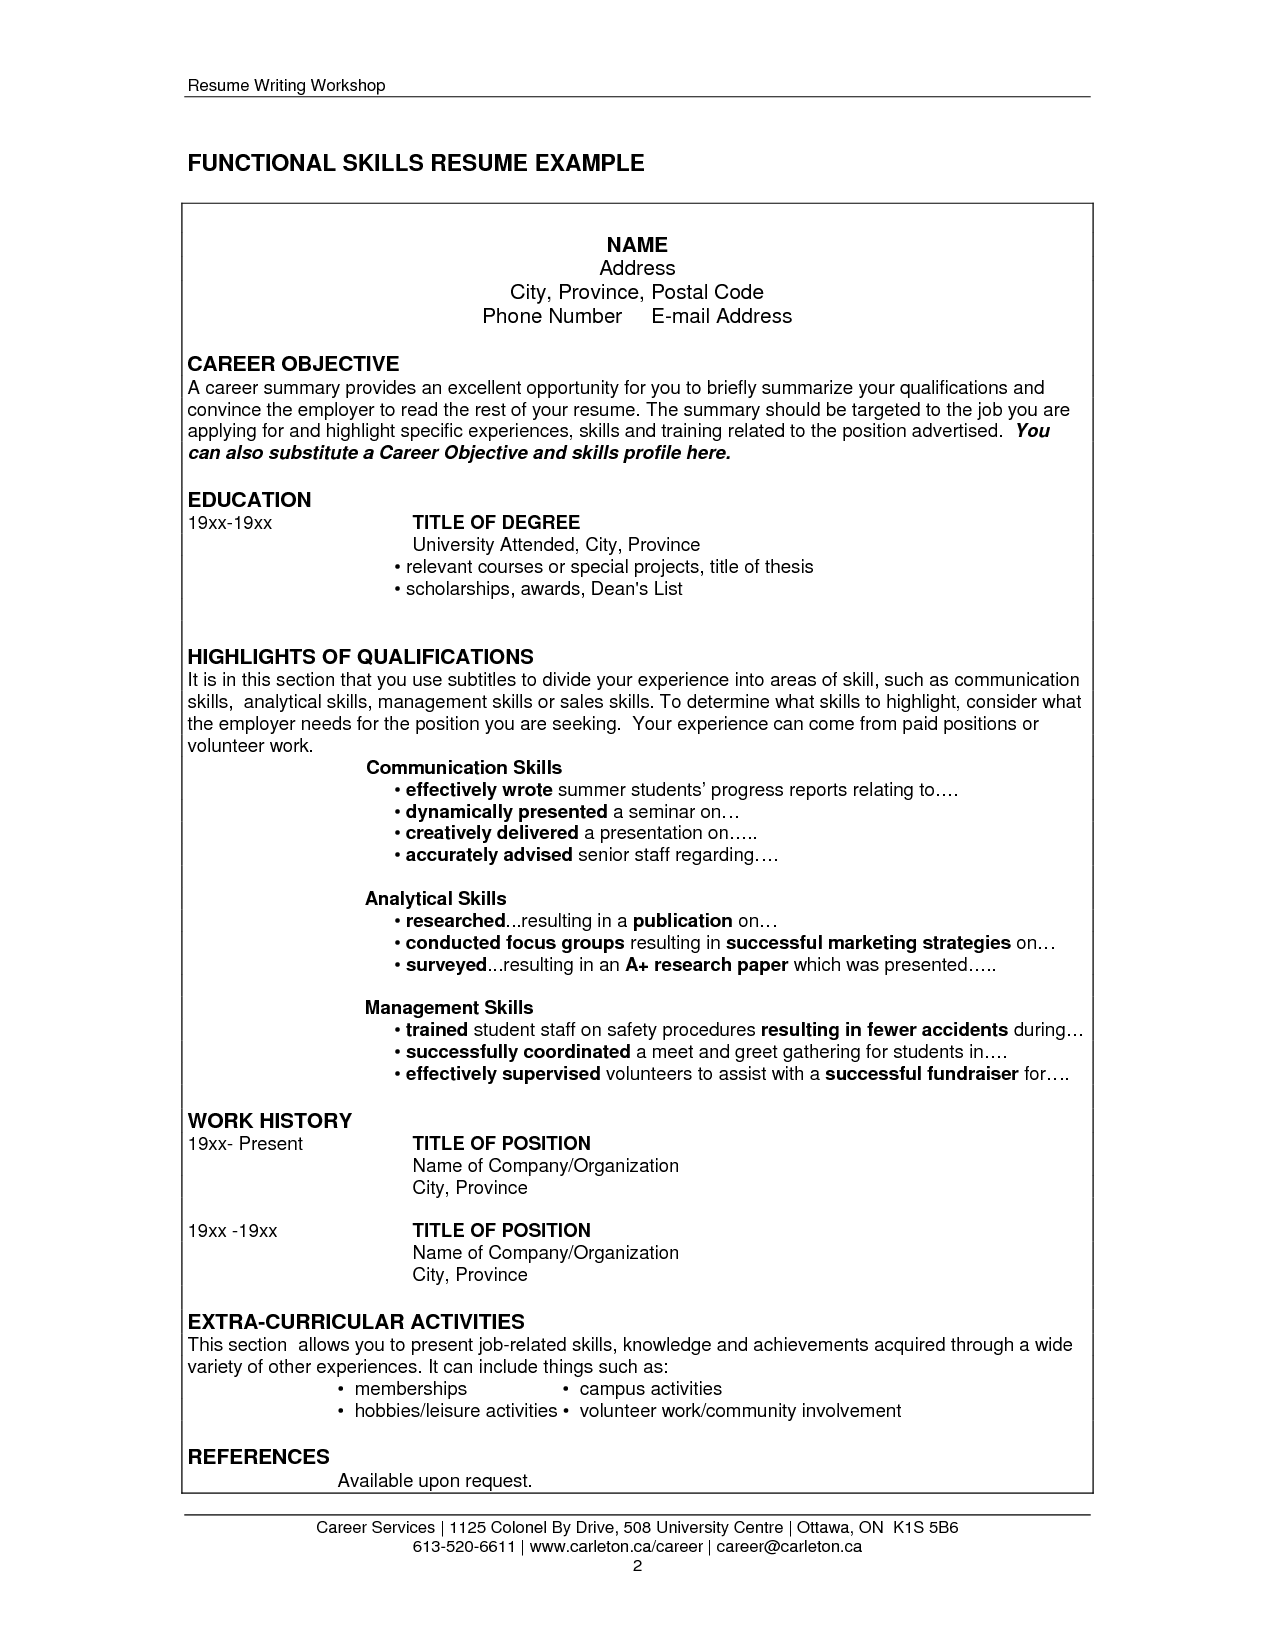 Image result for skills resume format | Business | Pinterest ...